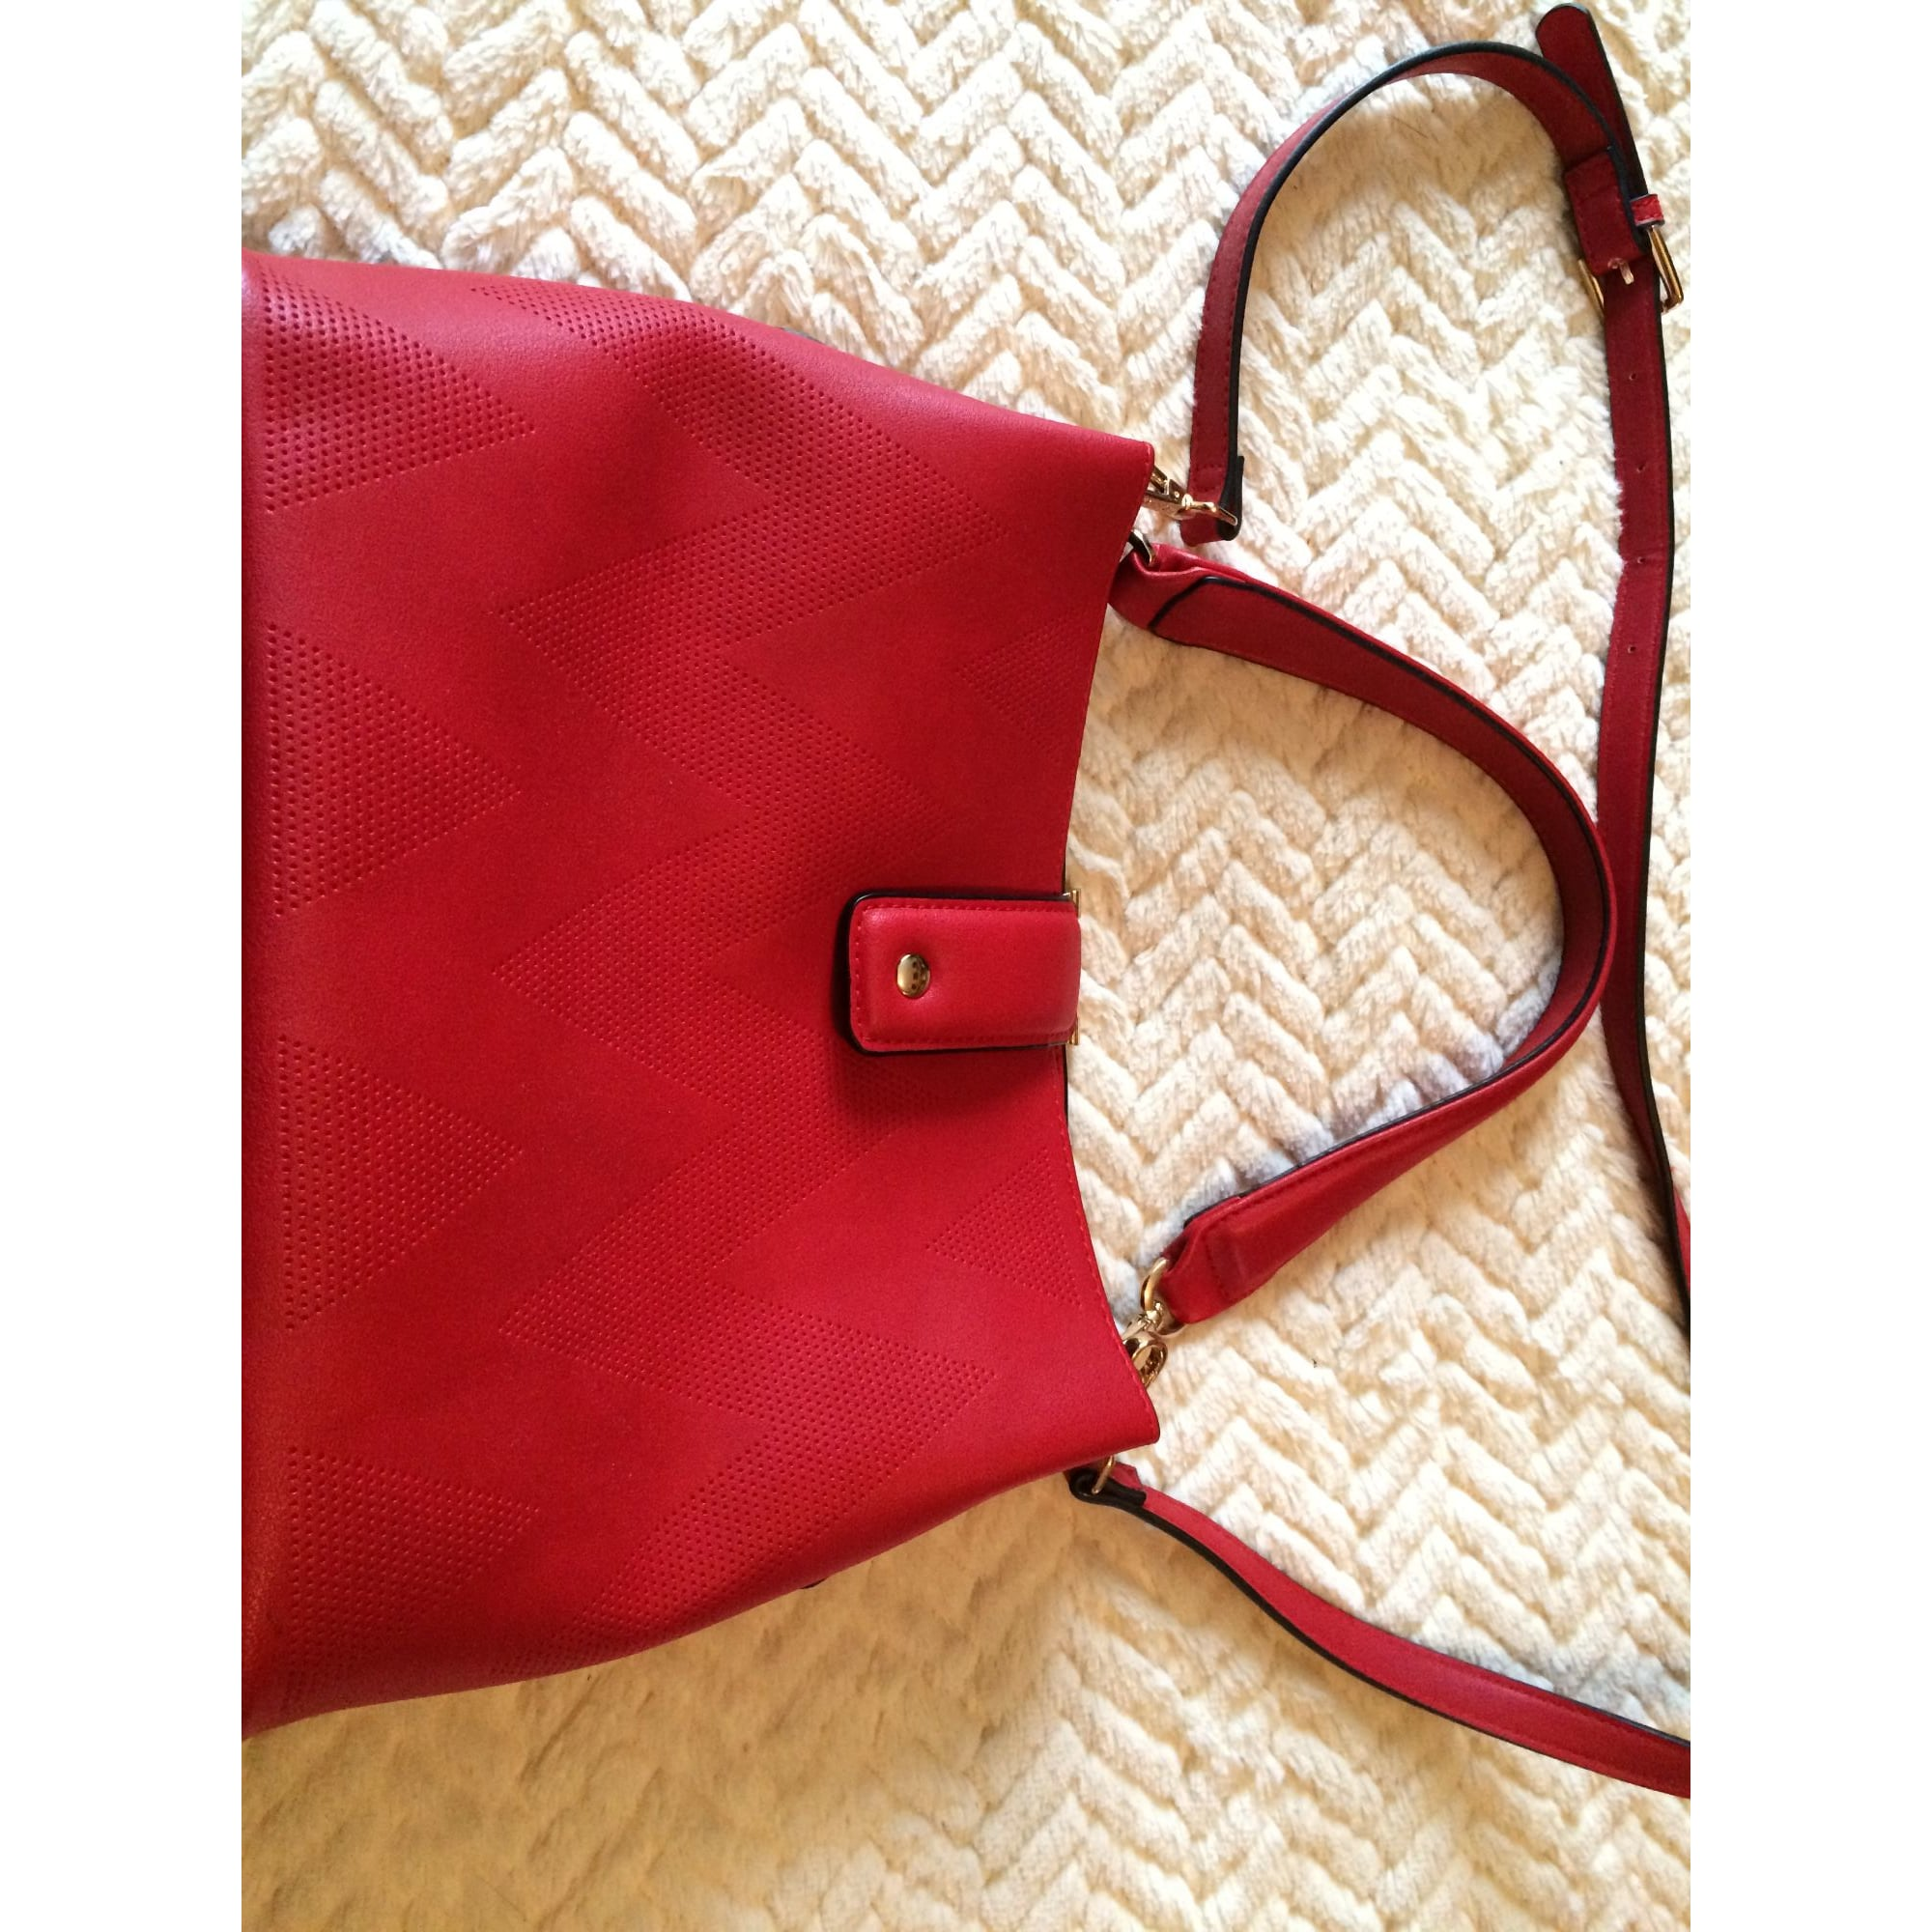 Sac à main en cuir TOM & EVA simili cuir  rouge